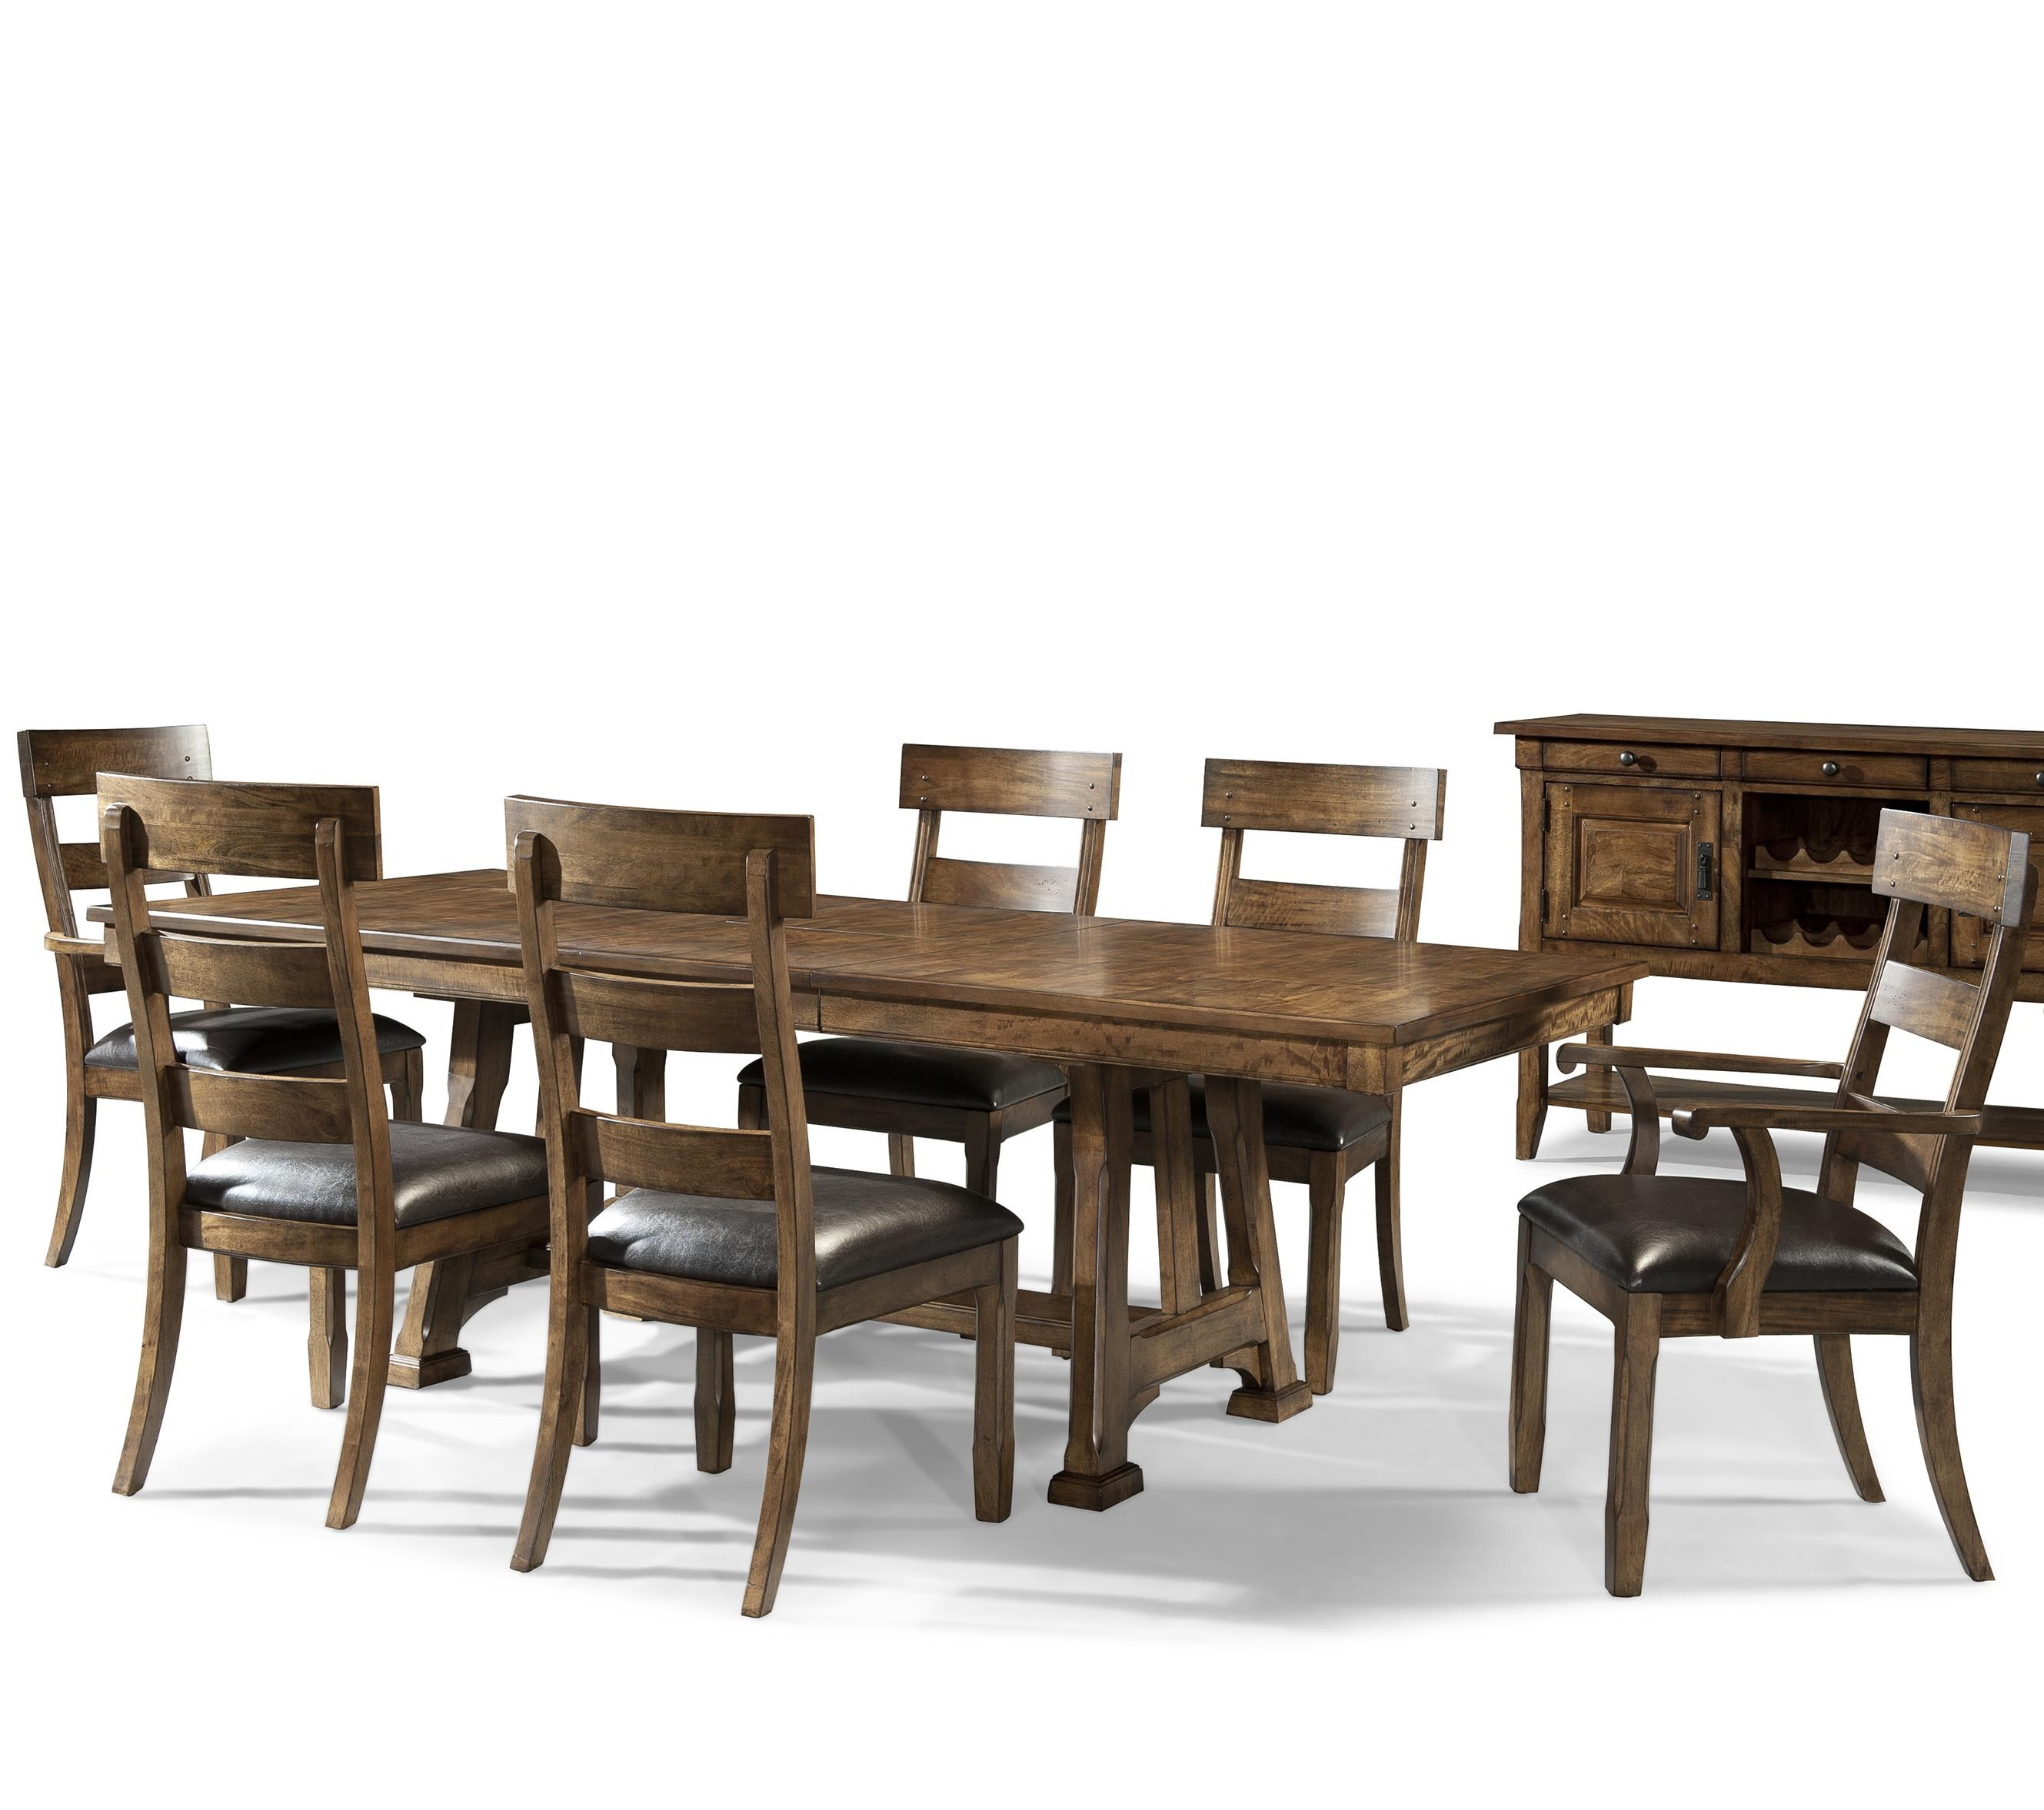 Transitional 7 Piece Trestle Table and Plank Chair Set